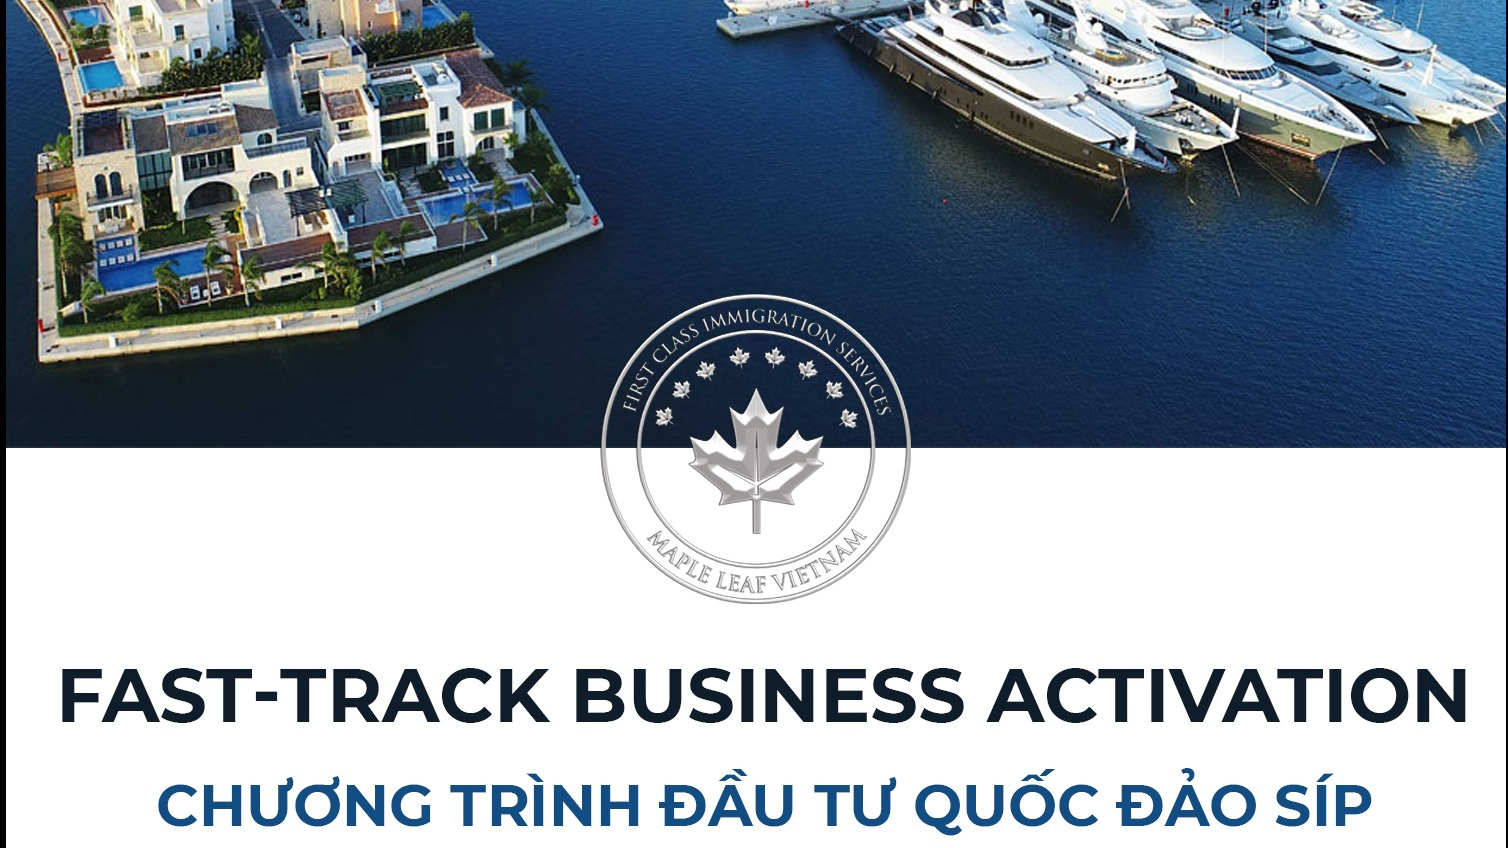 dau-tu-sip-chuong-trinh-fast-track-business-activation